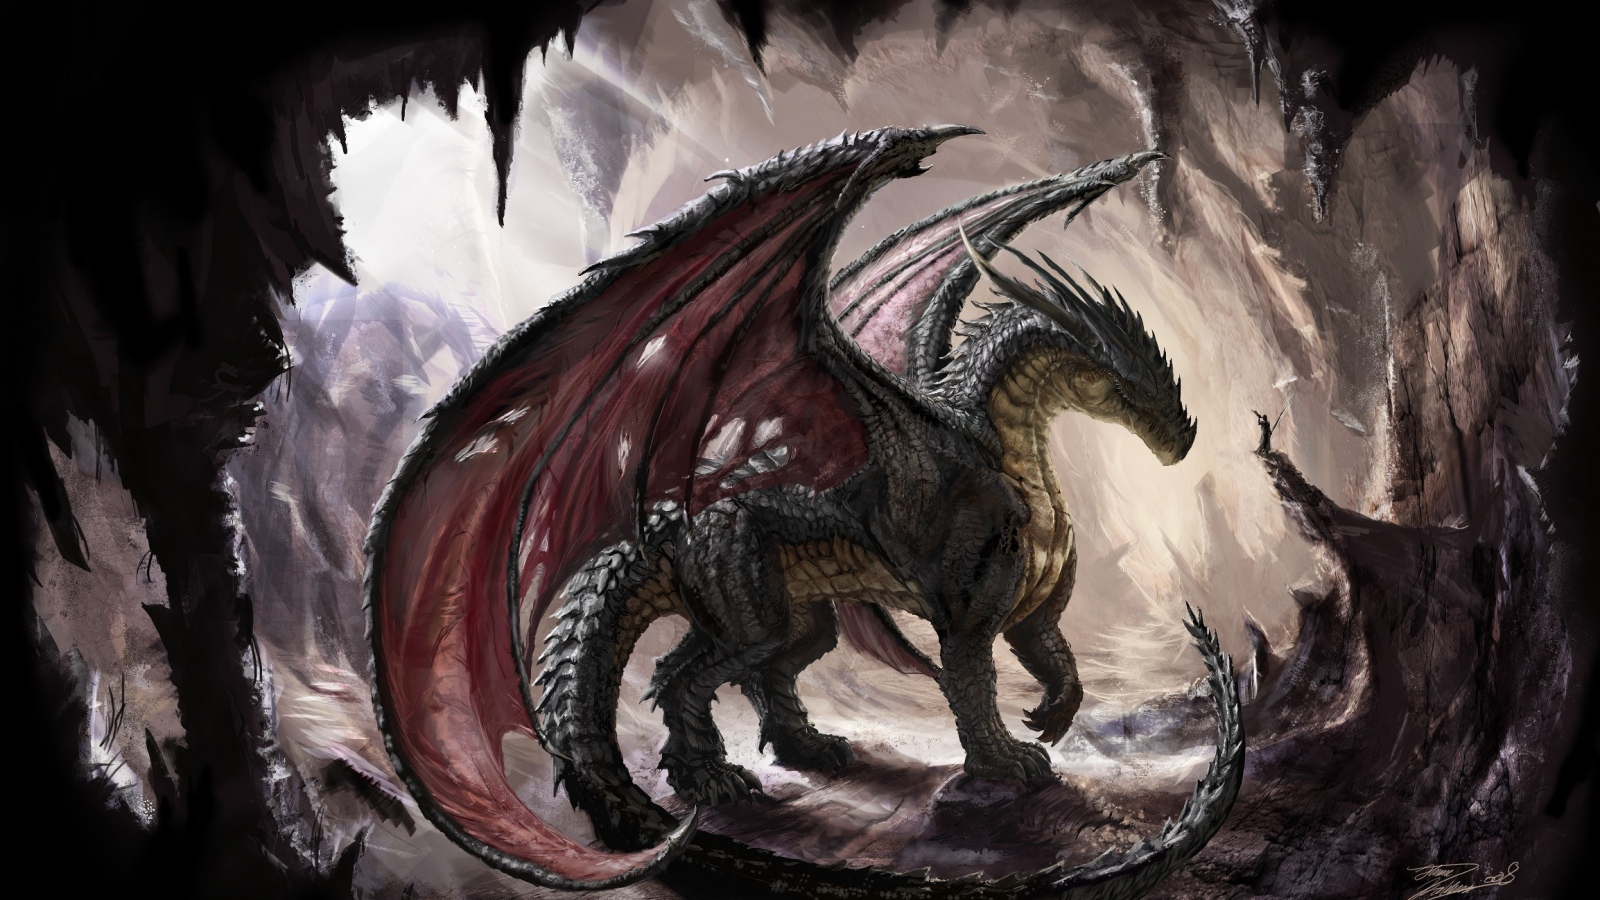 dragons images cave dragon hd wallpaper and background photos (39057400)